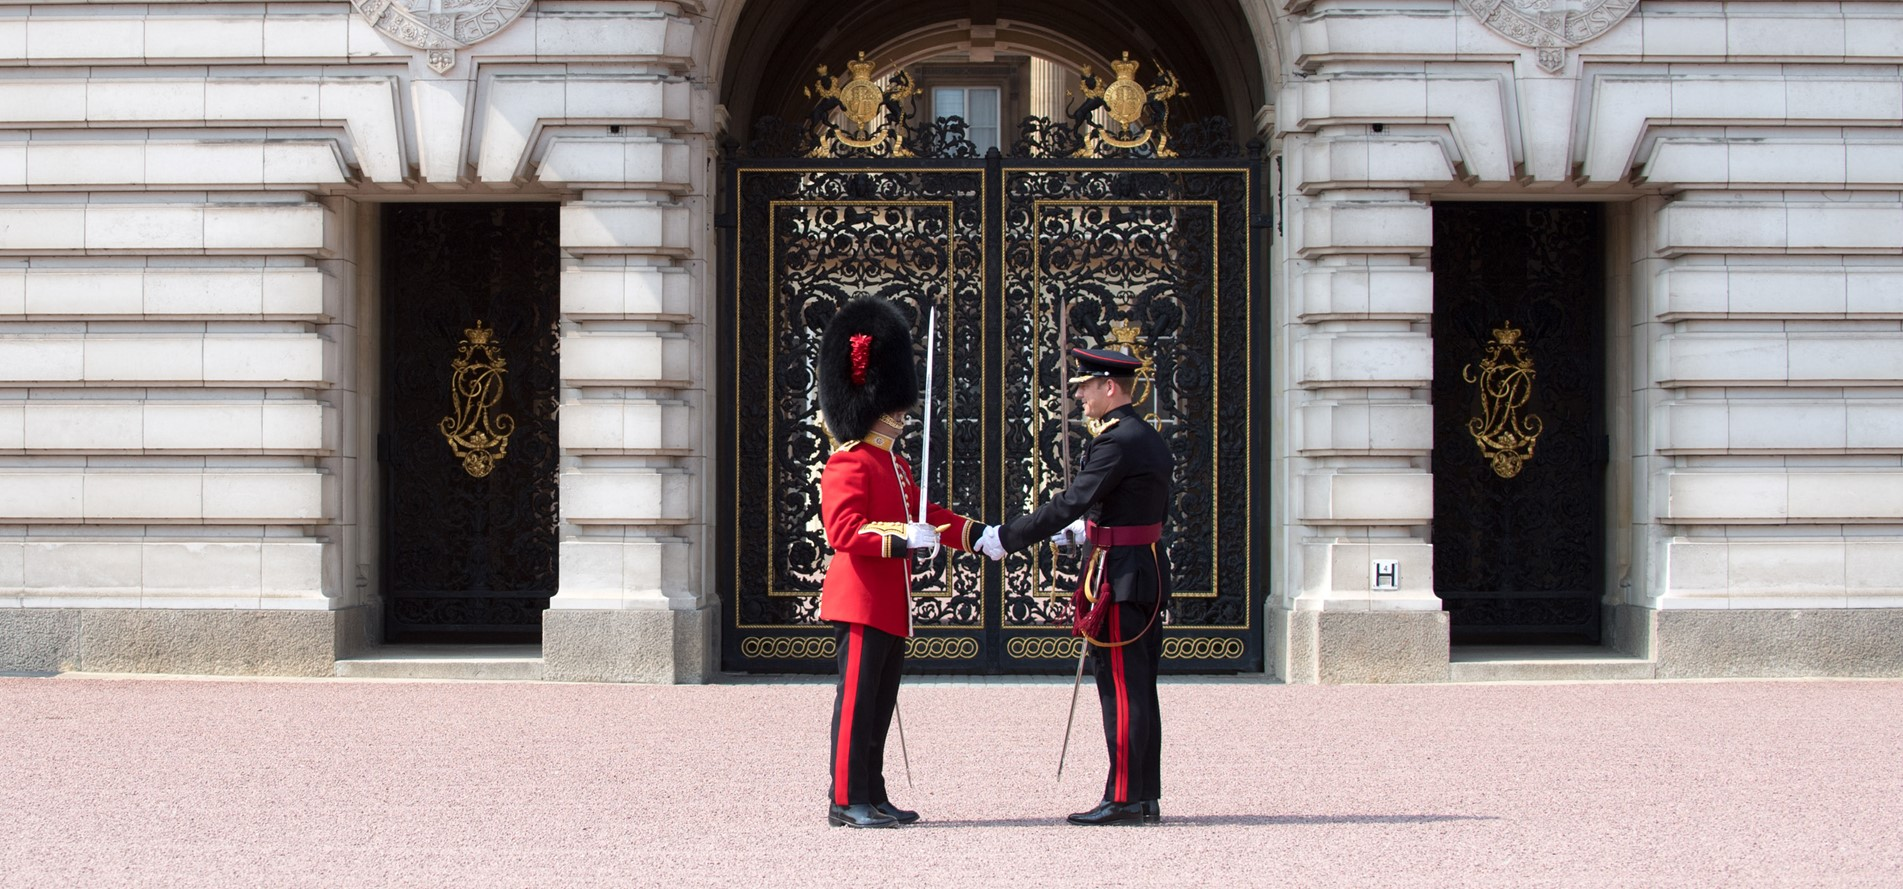 APOLOND-2018-128-0263-3 Regt RLC Mount The Queens Guard.JPG